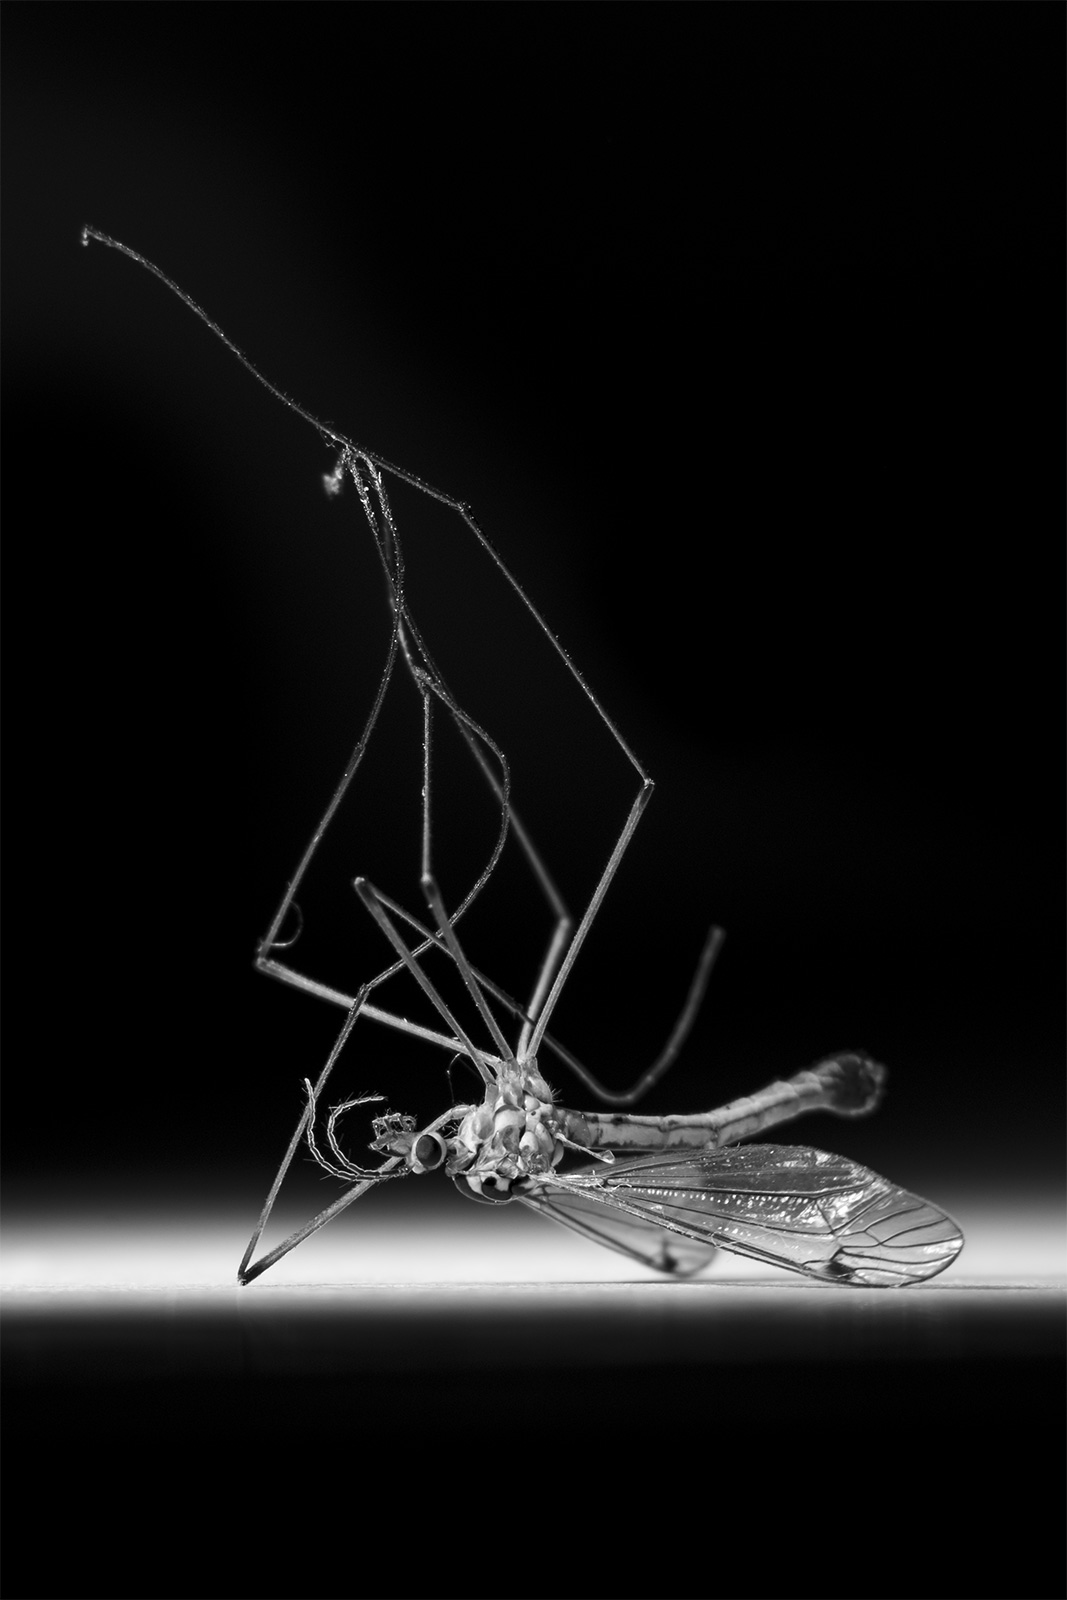 Dead Crane Fly Tipulidae on back with legs in the air  black and white monochrome macro portrait photograph   P. Maton 2018 eyeteeth.net